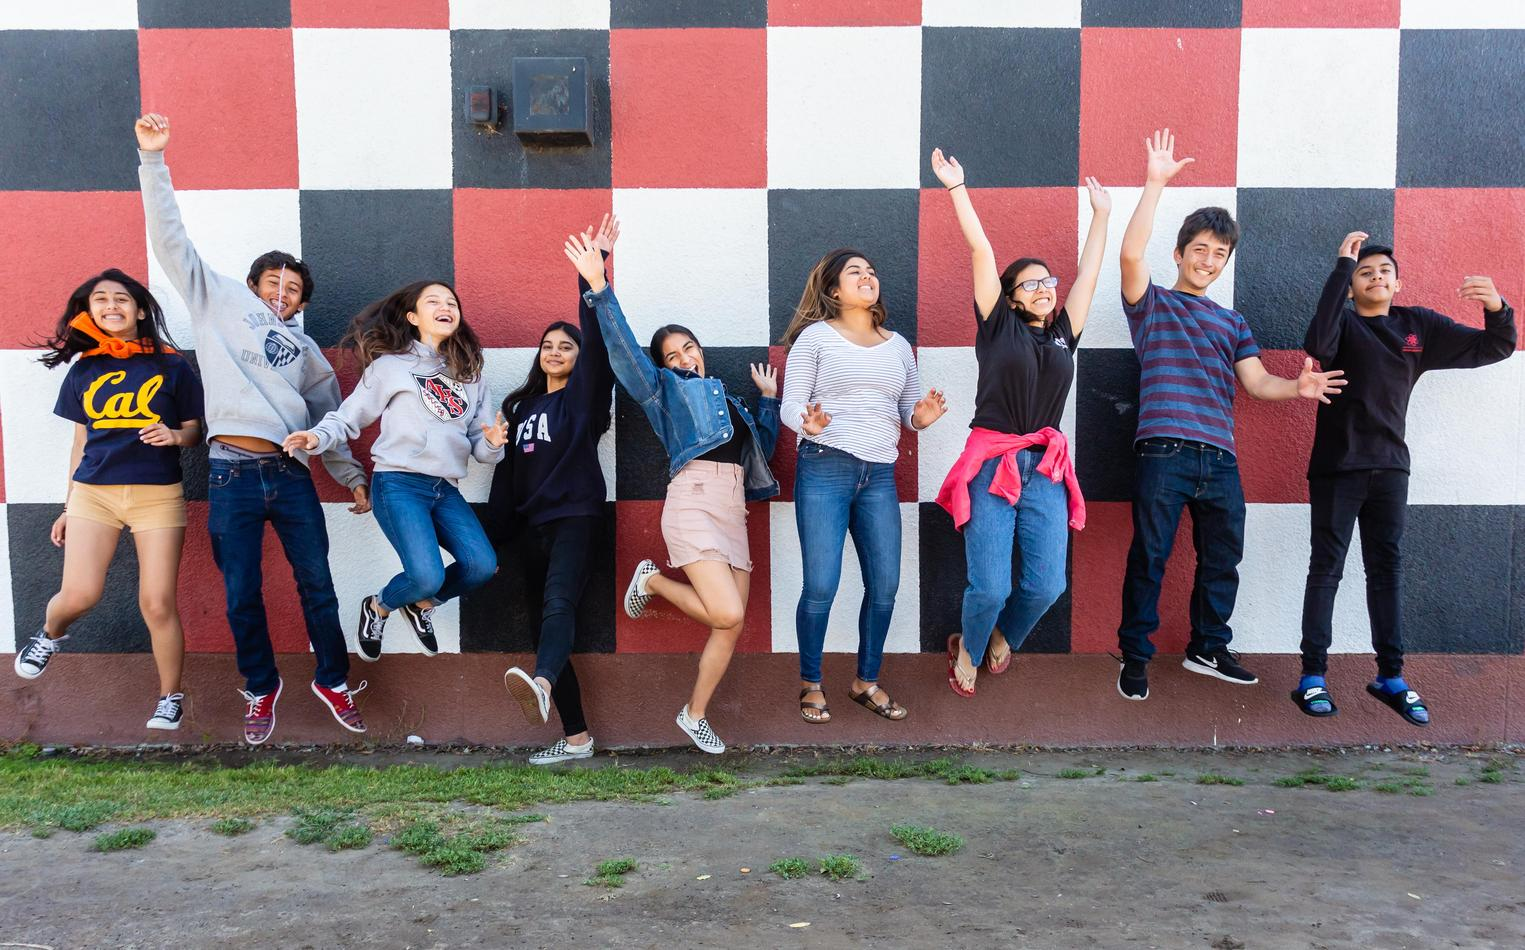 High school students jumping enthusiastically in front of wall mural.